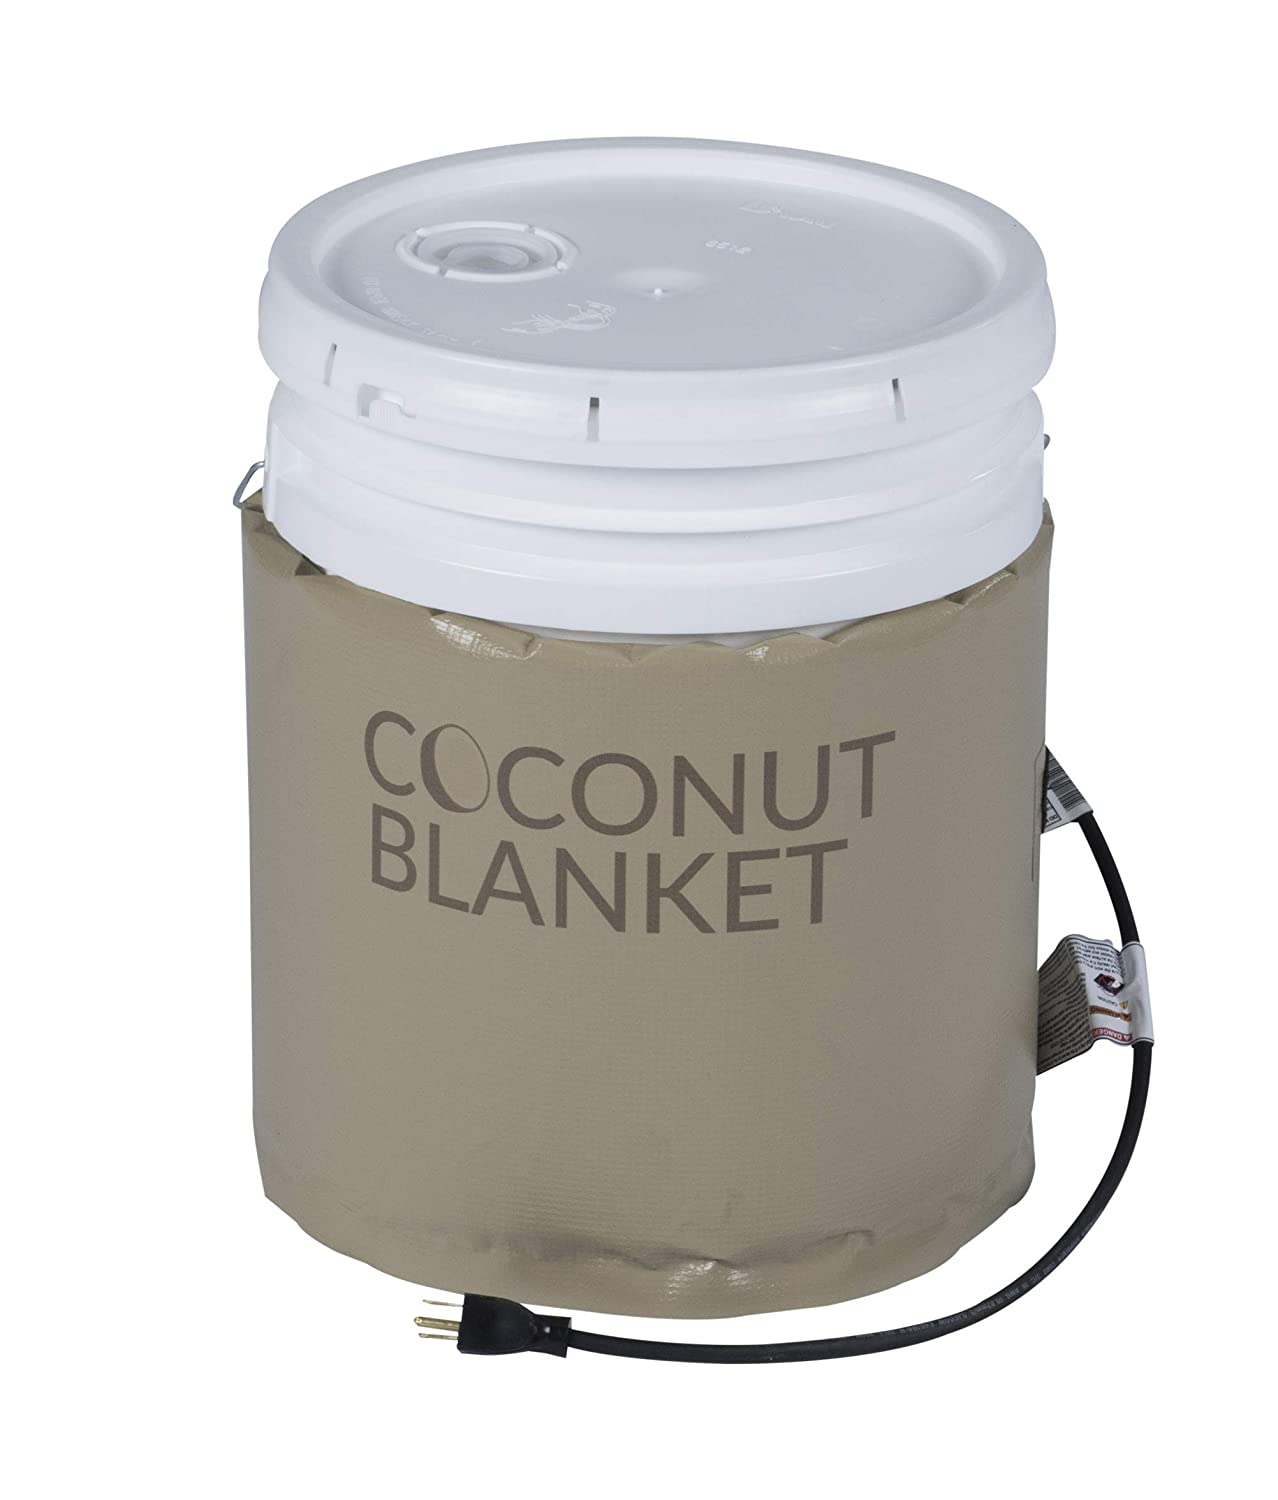 "Powerblanket CN05 5 gal Coconut Oil Bucket Heating Blanket, Fixed Thermostat, 100 Degree F, 120V, 120W, 0.75"", Tan"